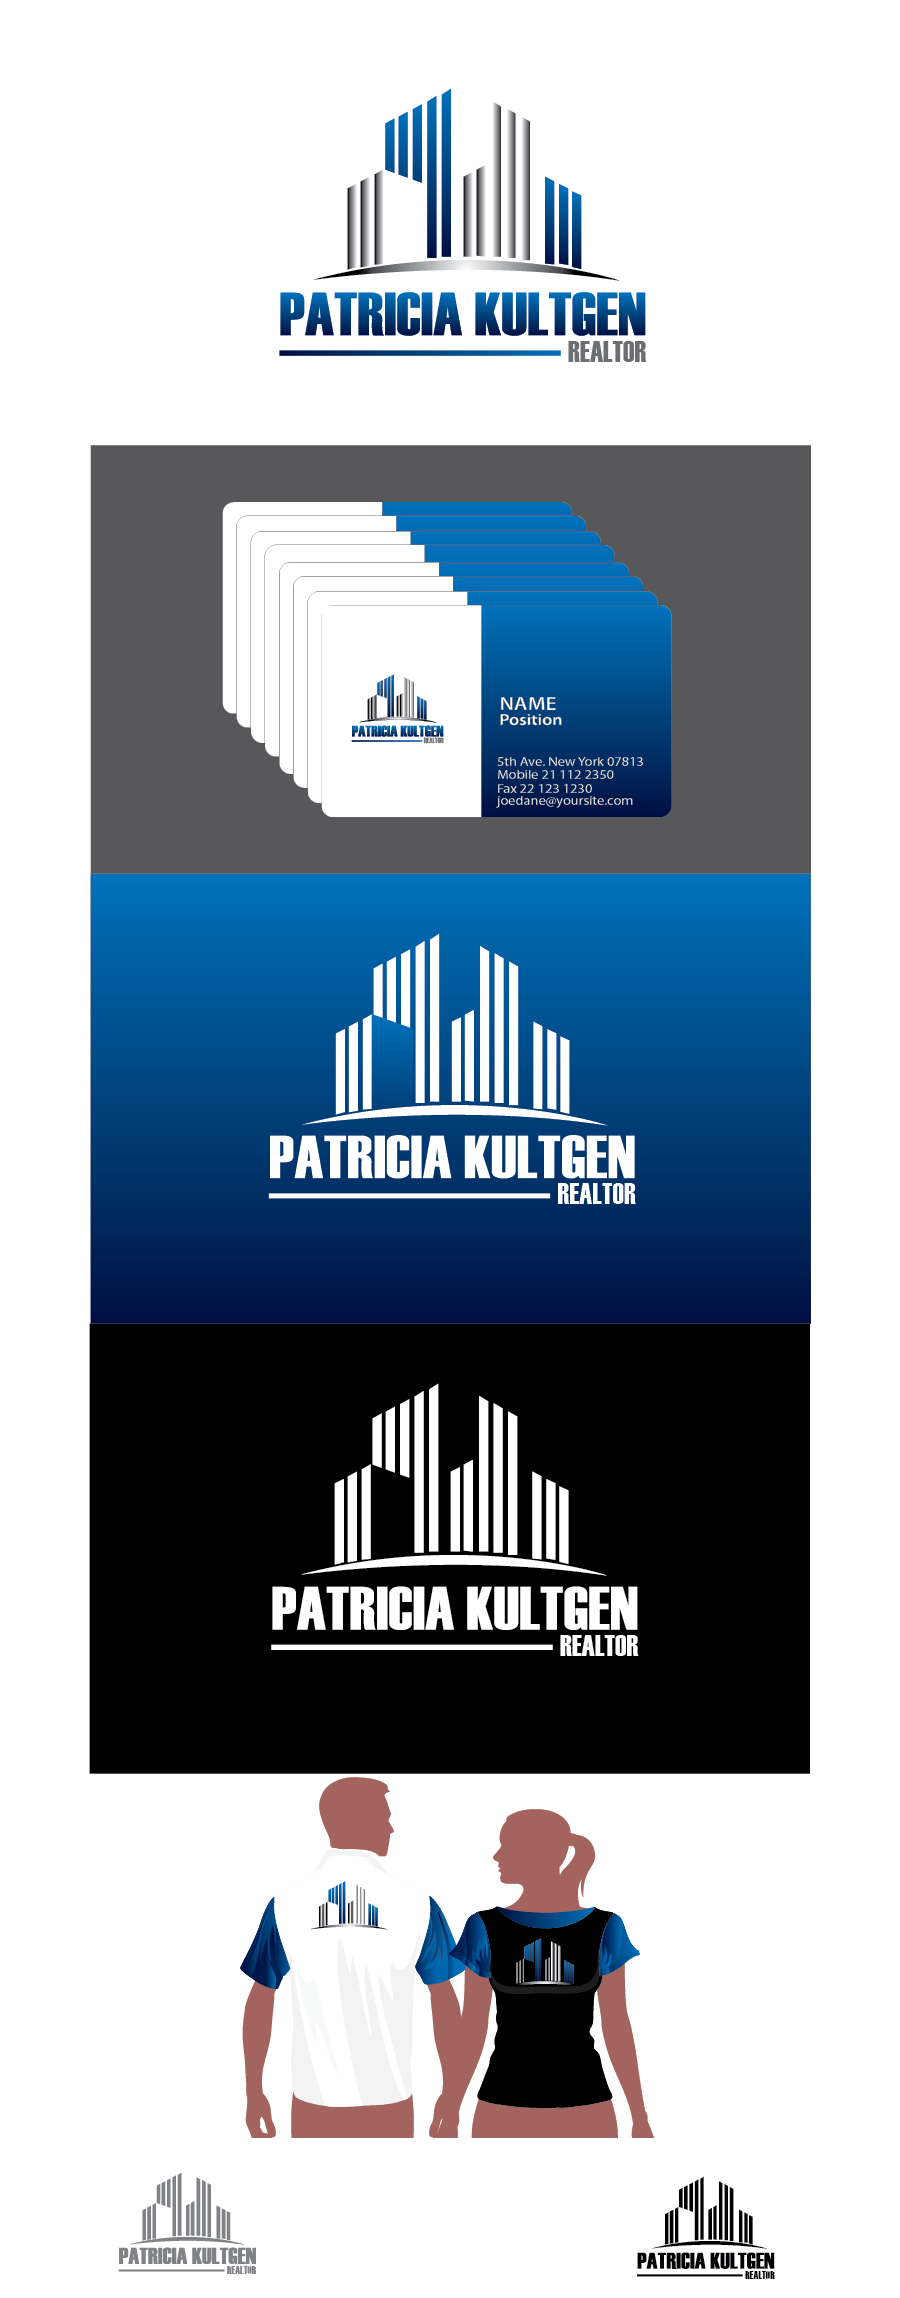 Logo Design by Moin Javed - Entry No. 54 in the Logo Design Contest Logo Design Needed for Exciting New Company Patricia Kultgen Realtor.